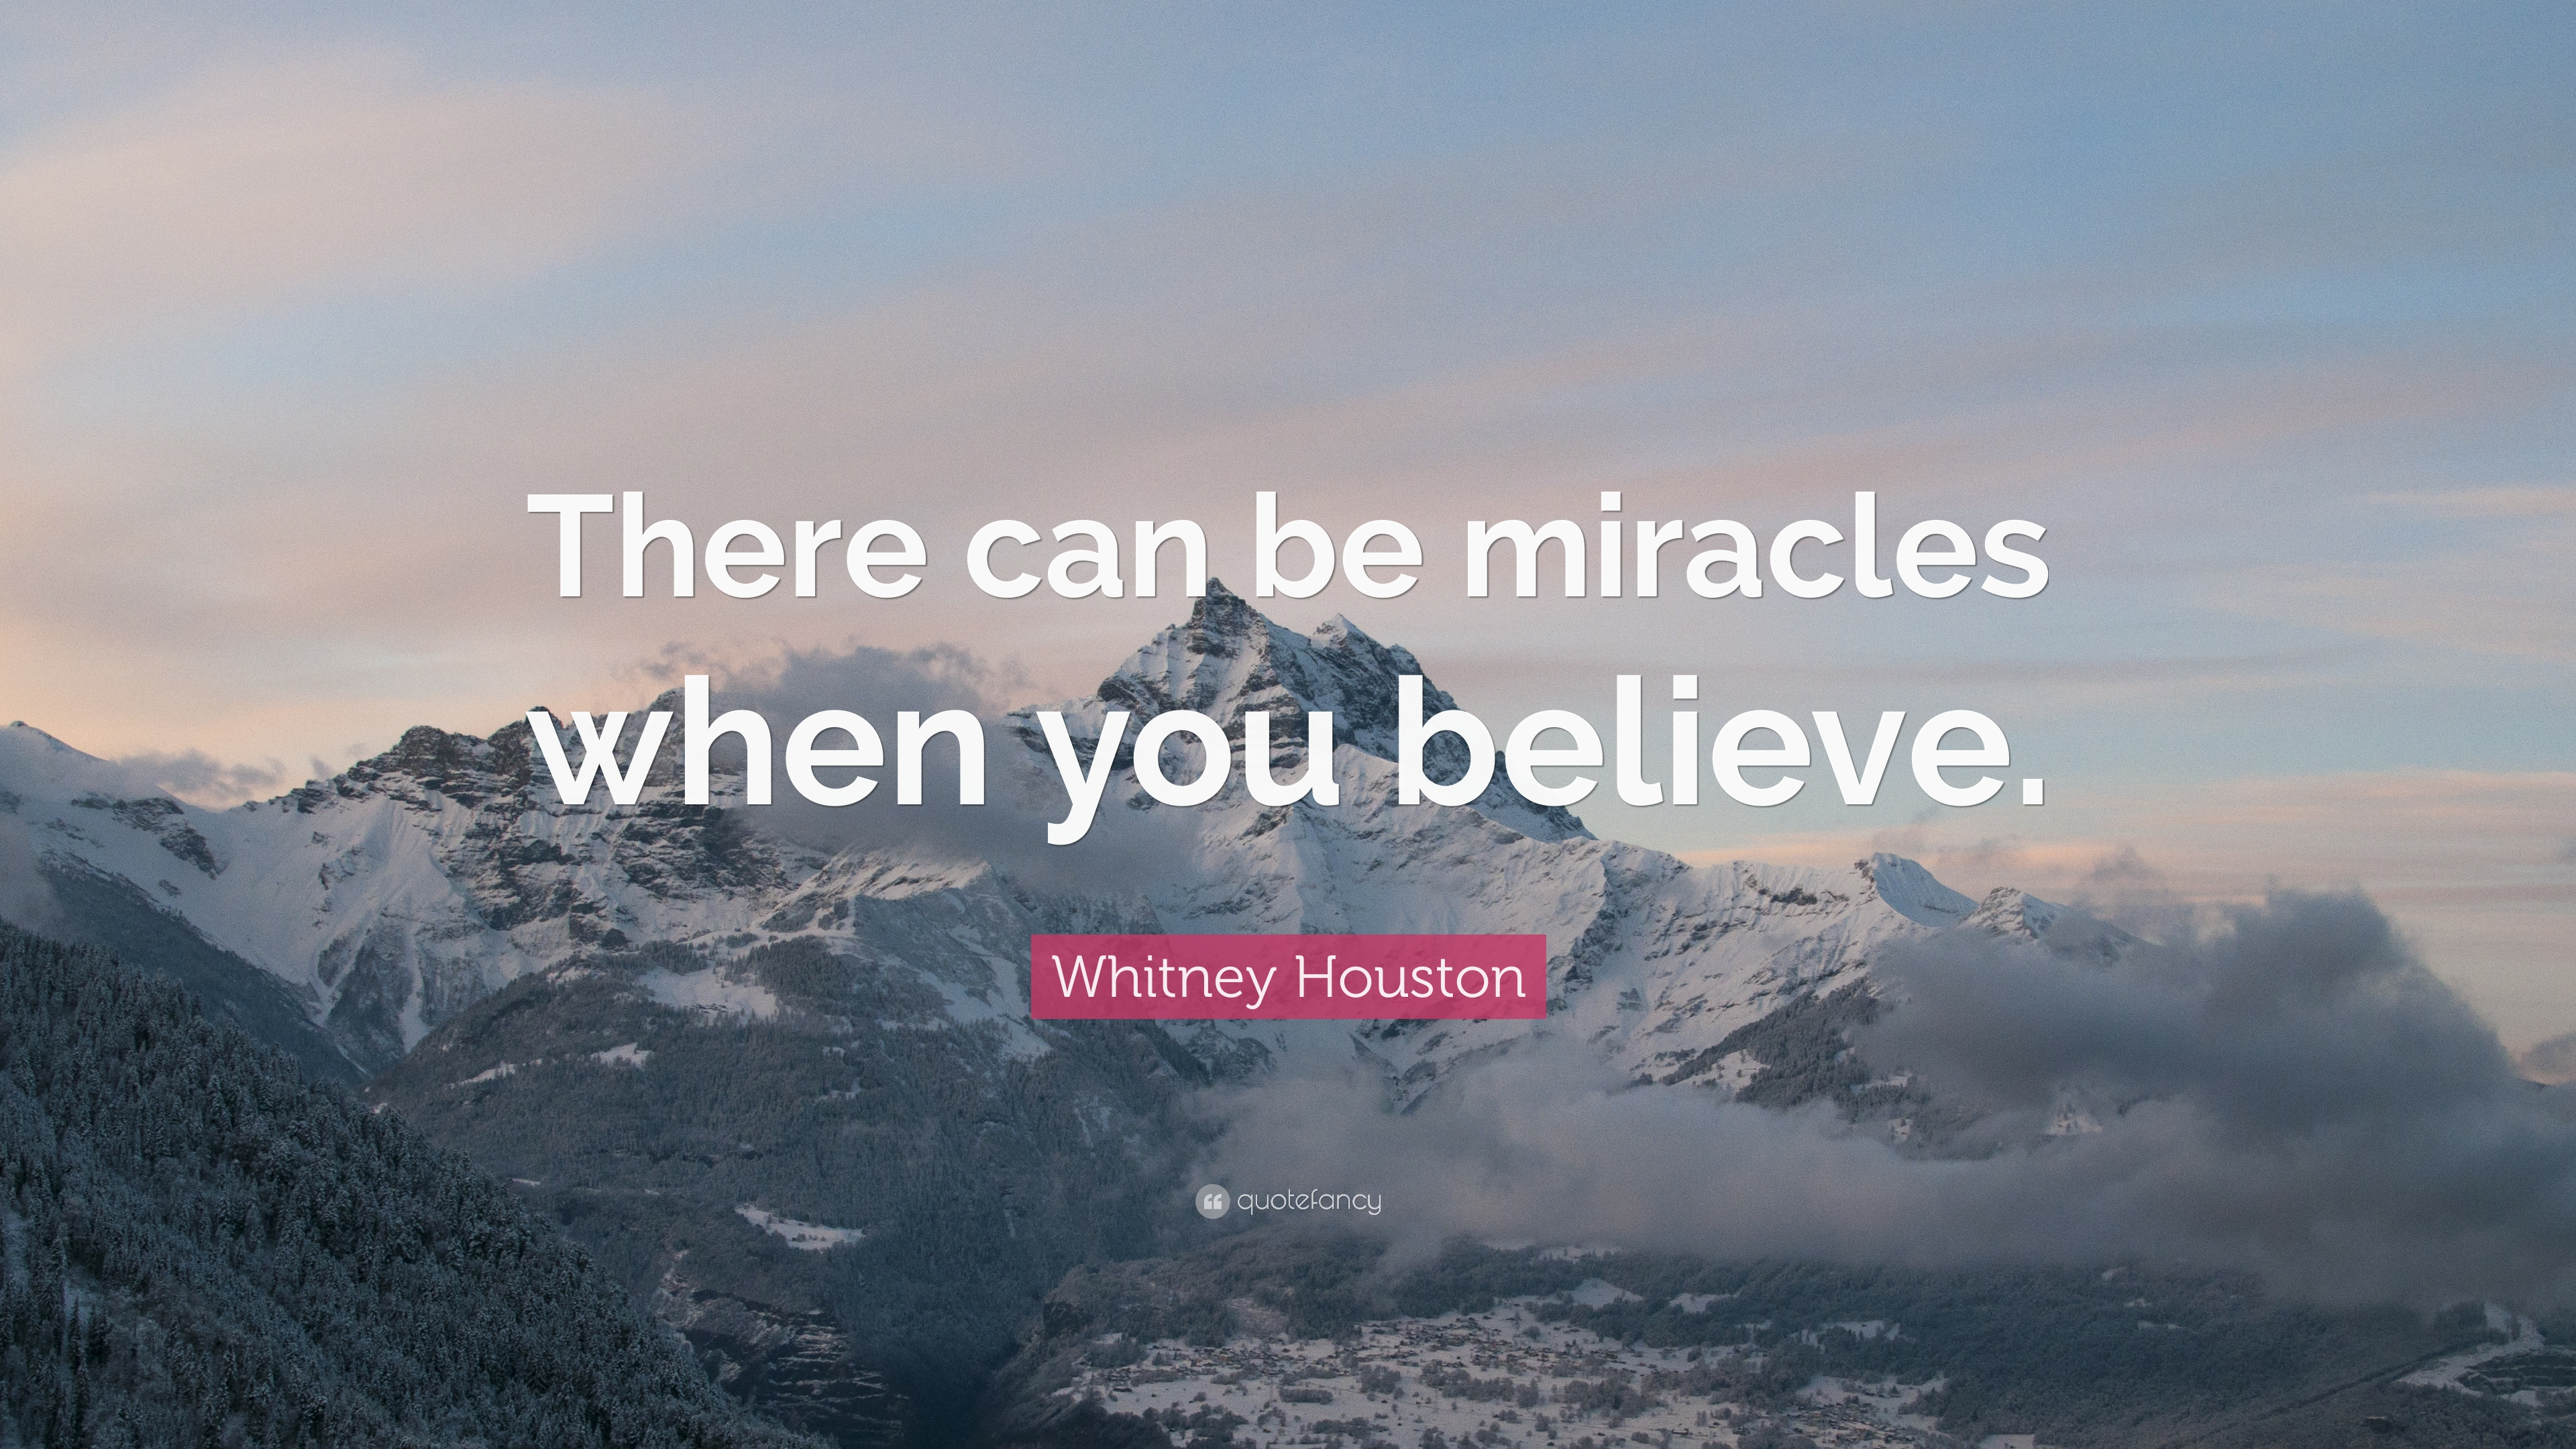 Whitney Houston Quote There Can Be Miracles When You Believe 12